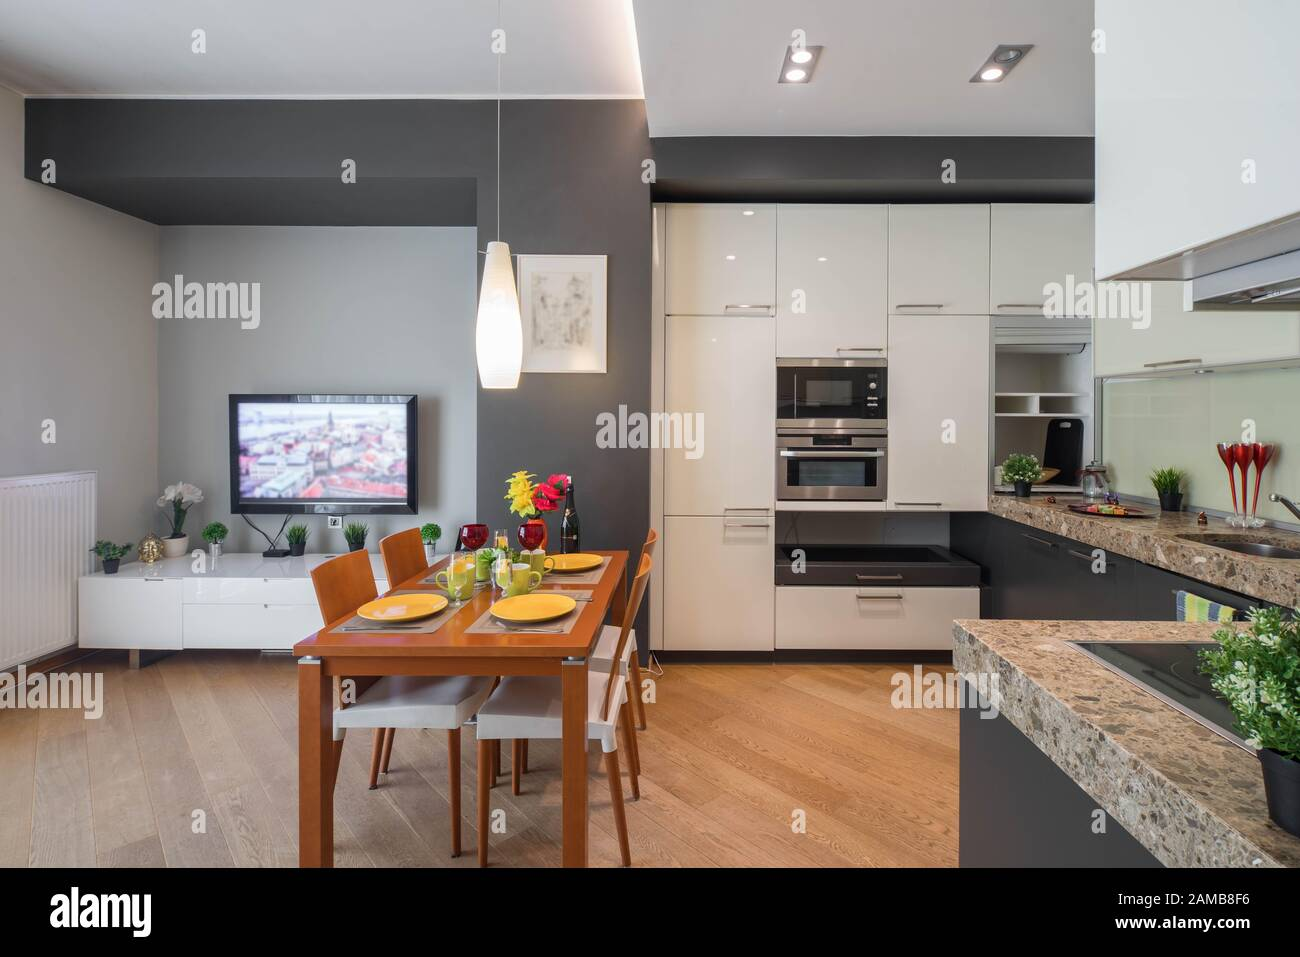 Modern Interior Of Kitchen In Studio Apartment Tv On The Wall Private House Stock Photo Alamy